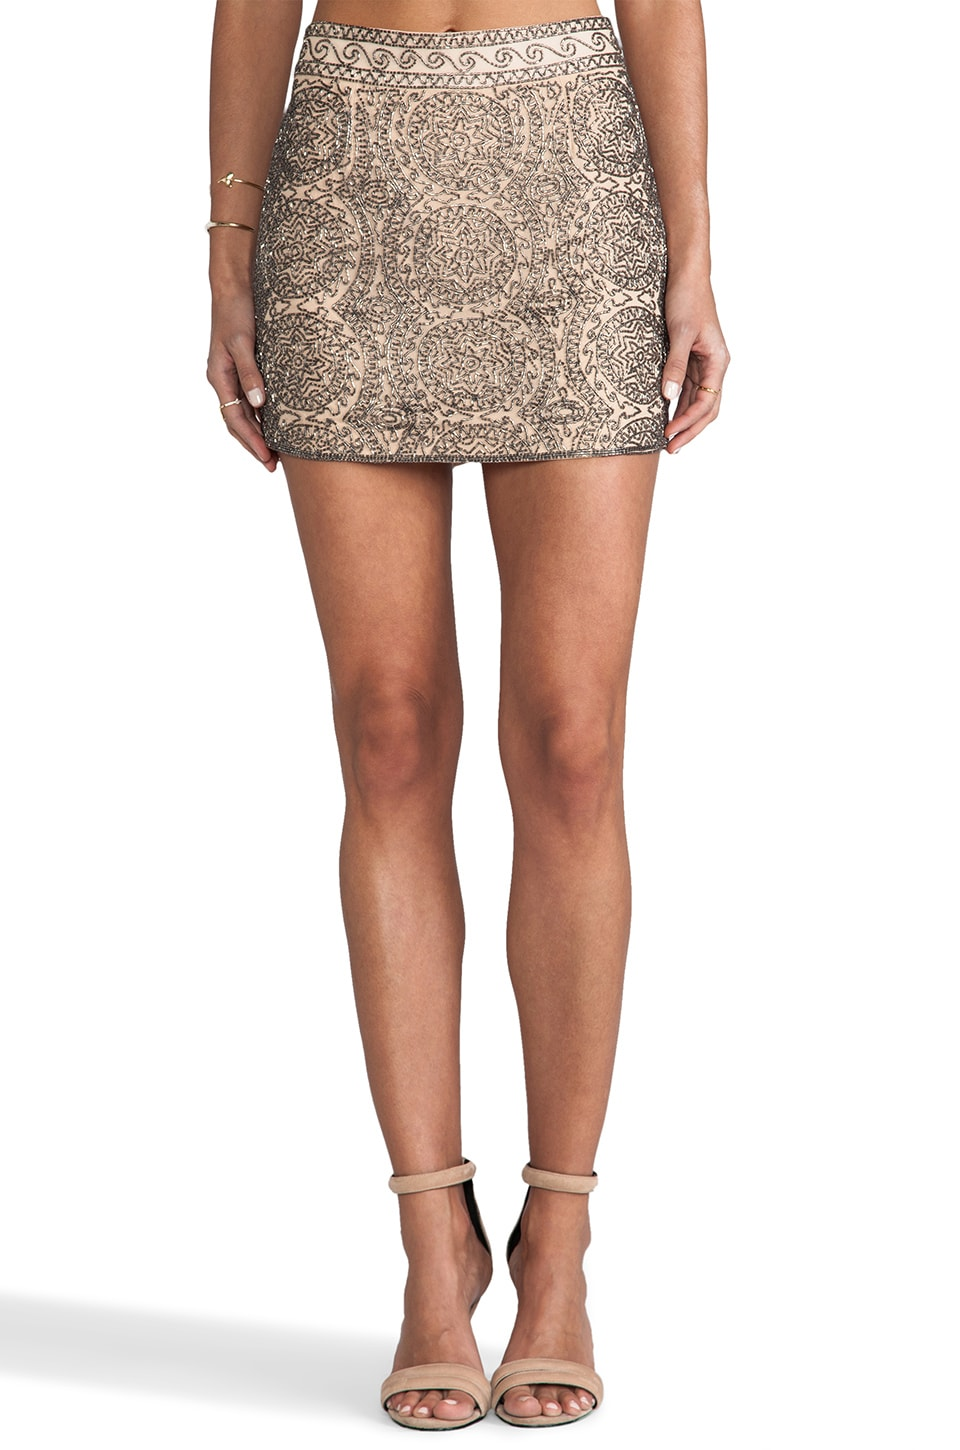 Karina Grimaldi Venus Beaded Mini Skirt in Nude